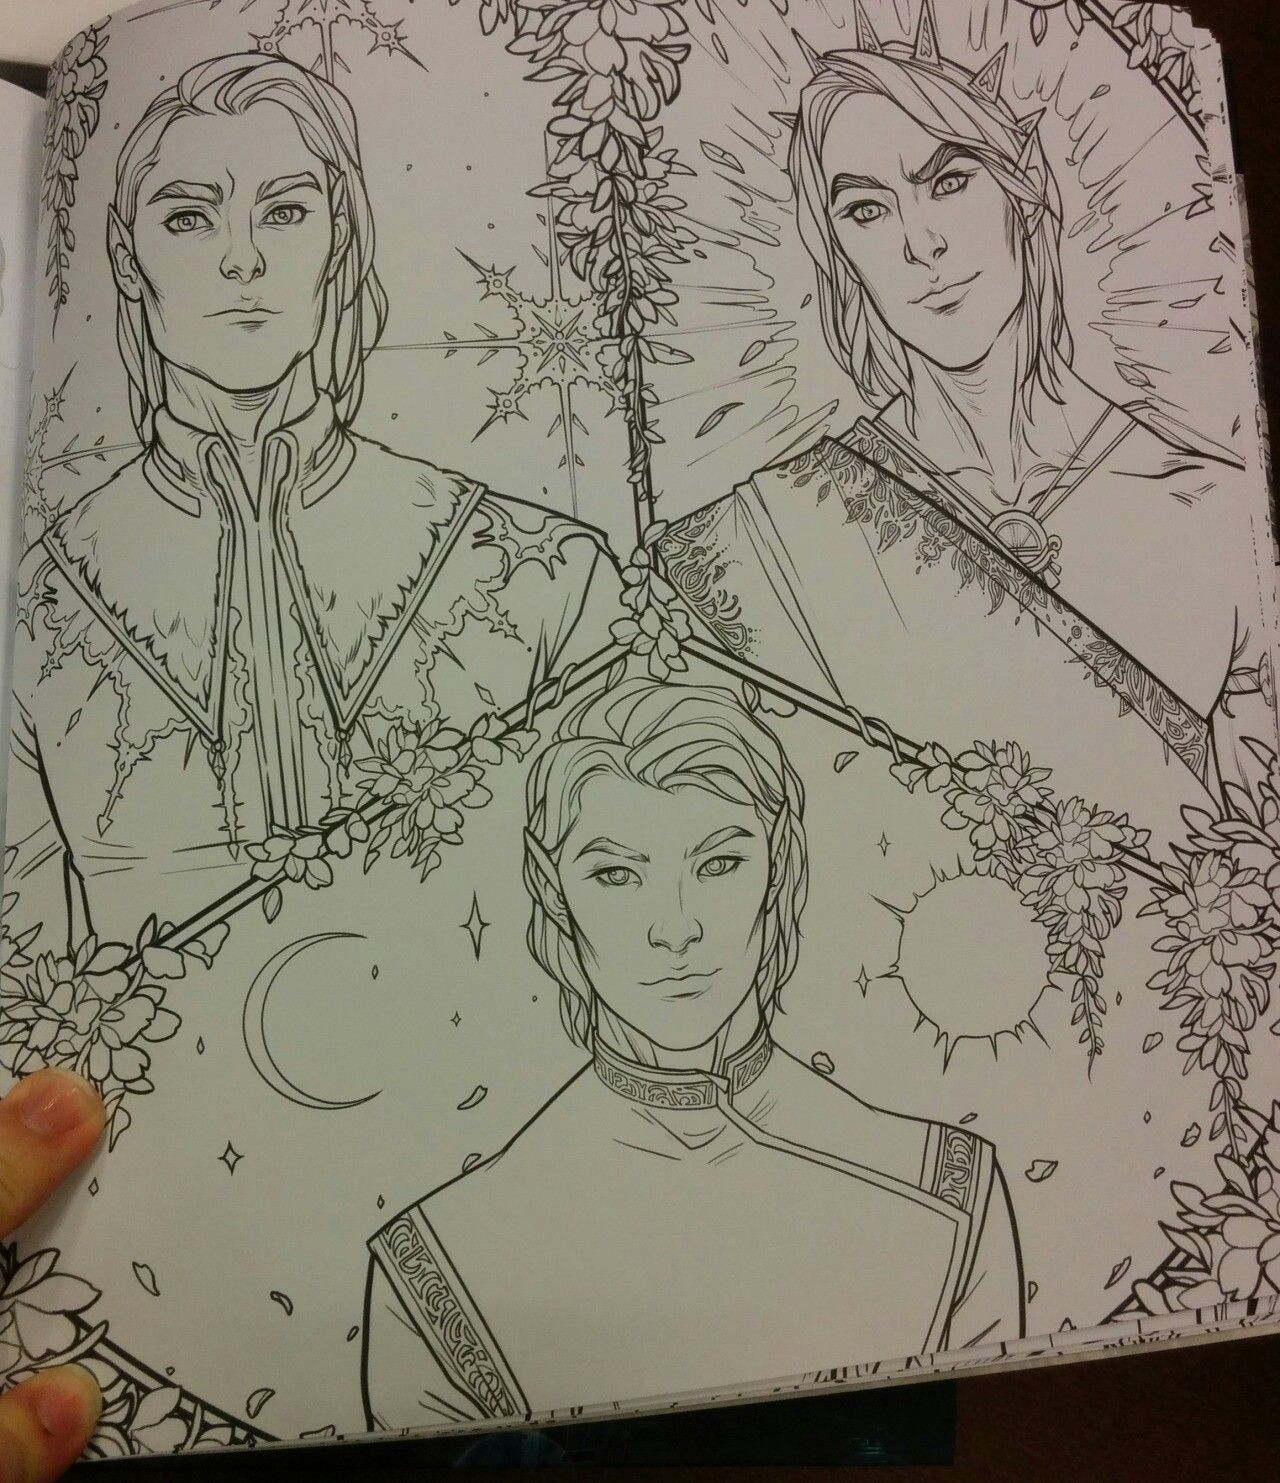 The High Lords Dayyuuuuummm They Re Hot Fans Face Acomaf Acowar Acotar I Think I M Developing Cru Sarah J Maas Books Coloring Books A Court Of Mist And Fury